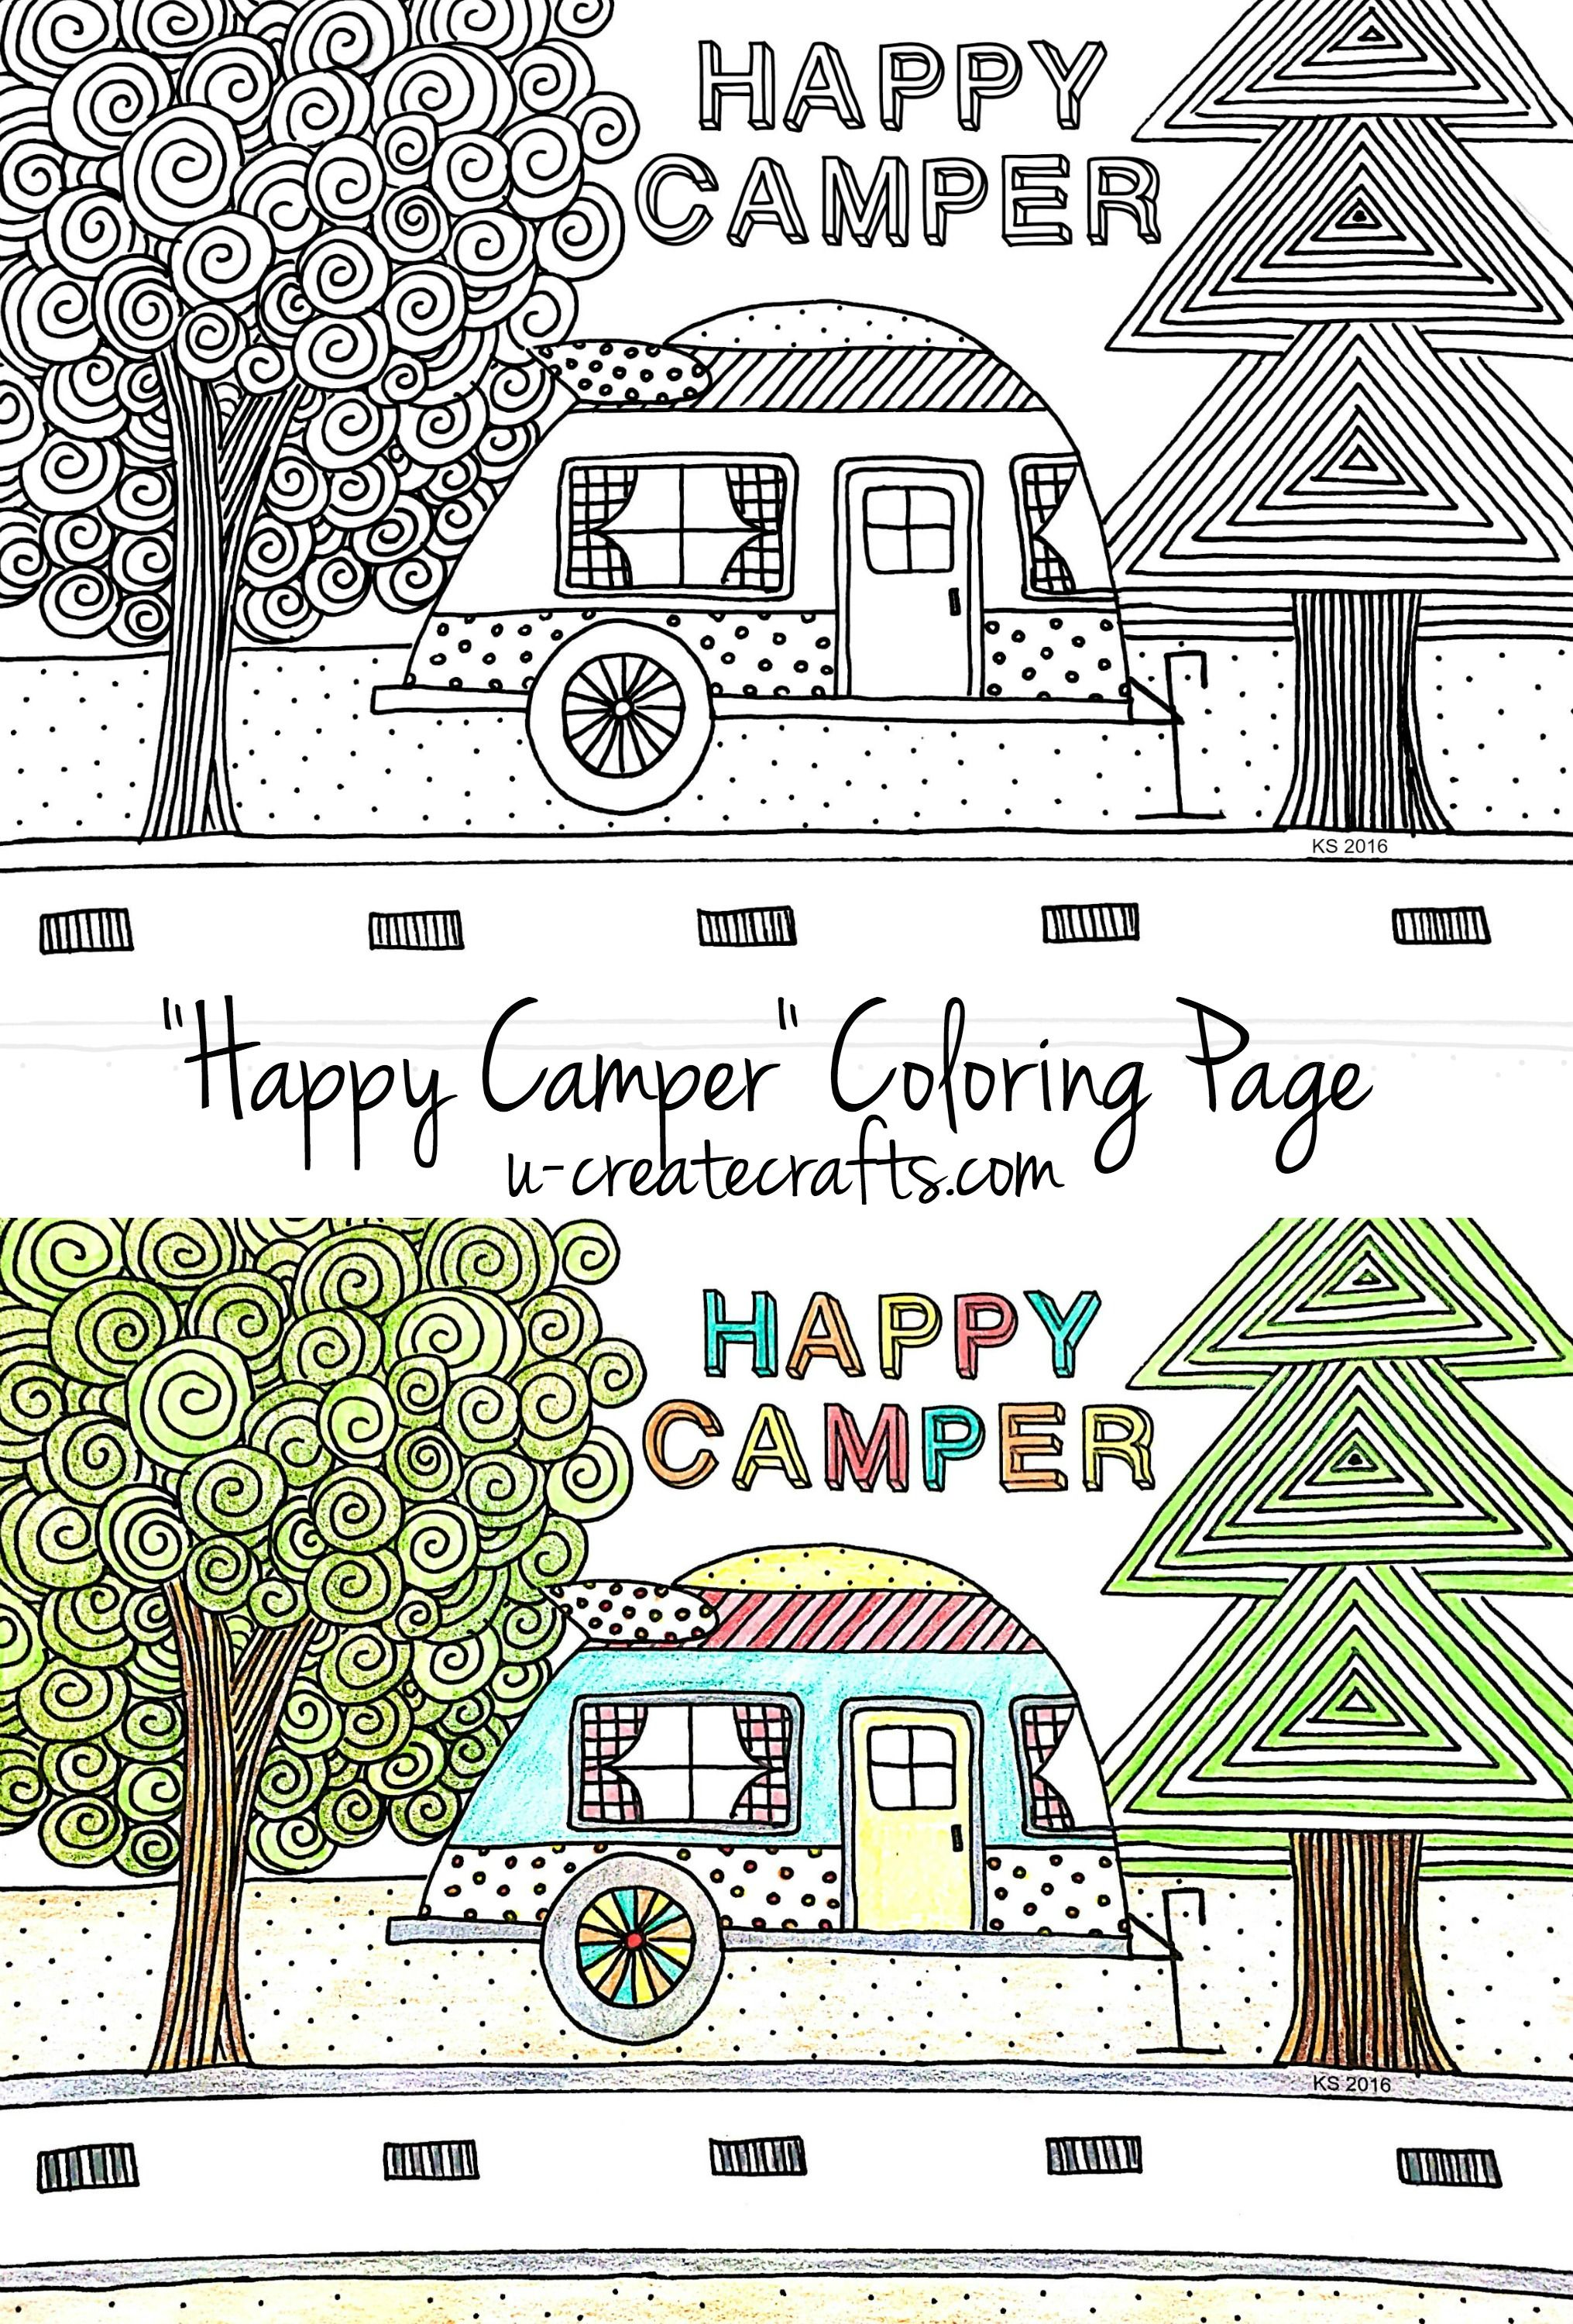 Happy Camper Coloring Page Camping Coloring Pages Coloring